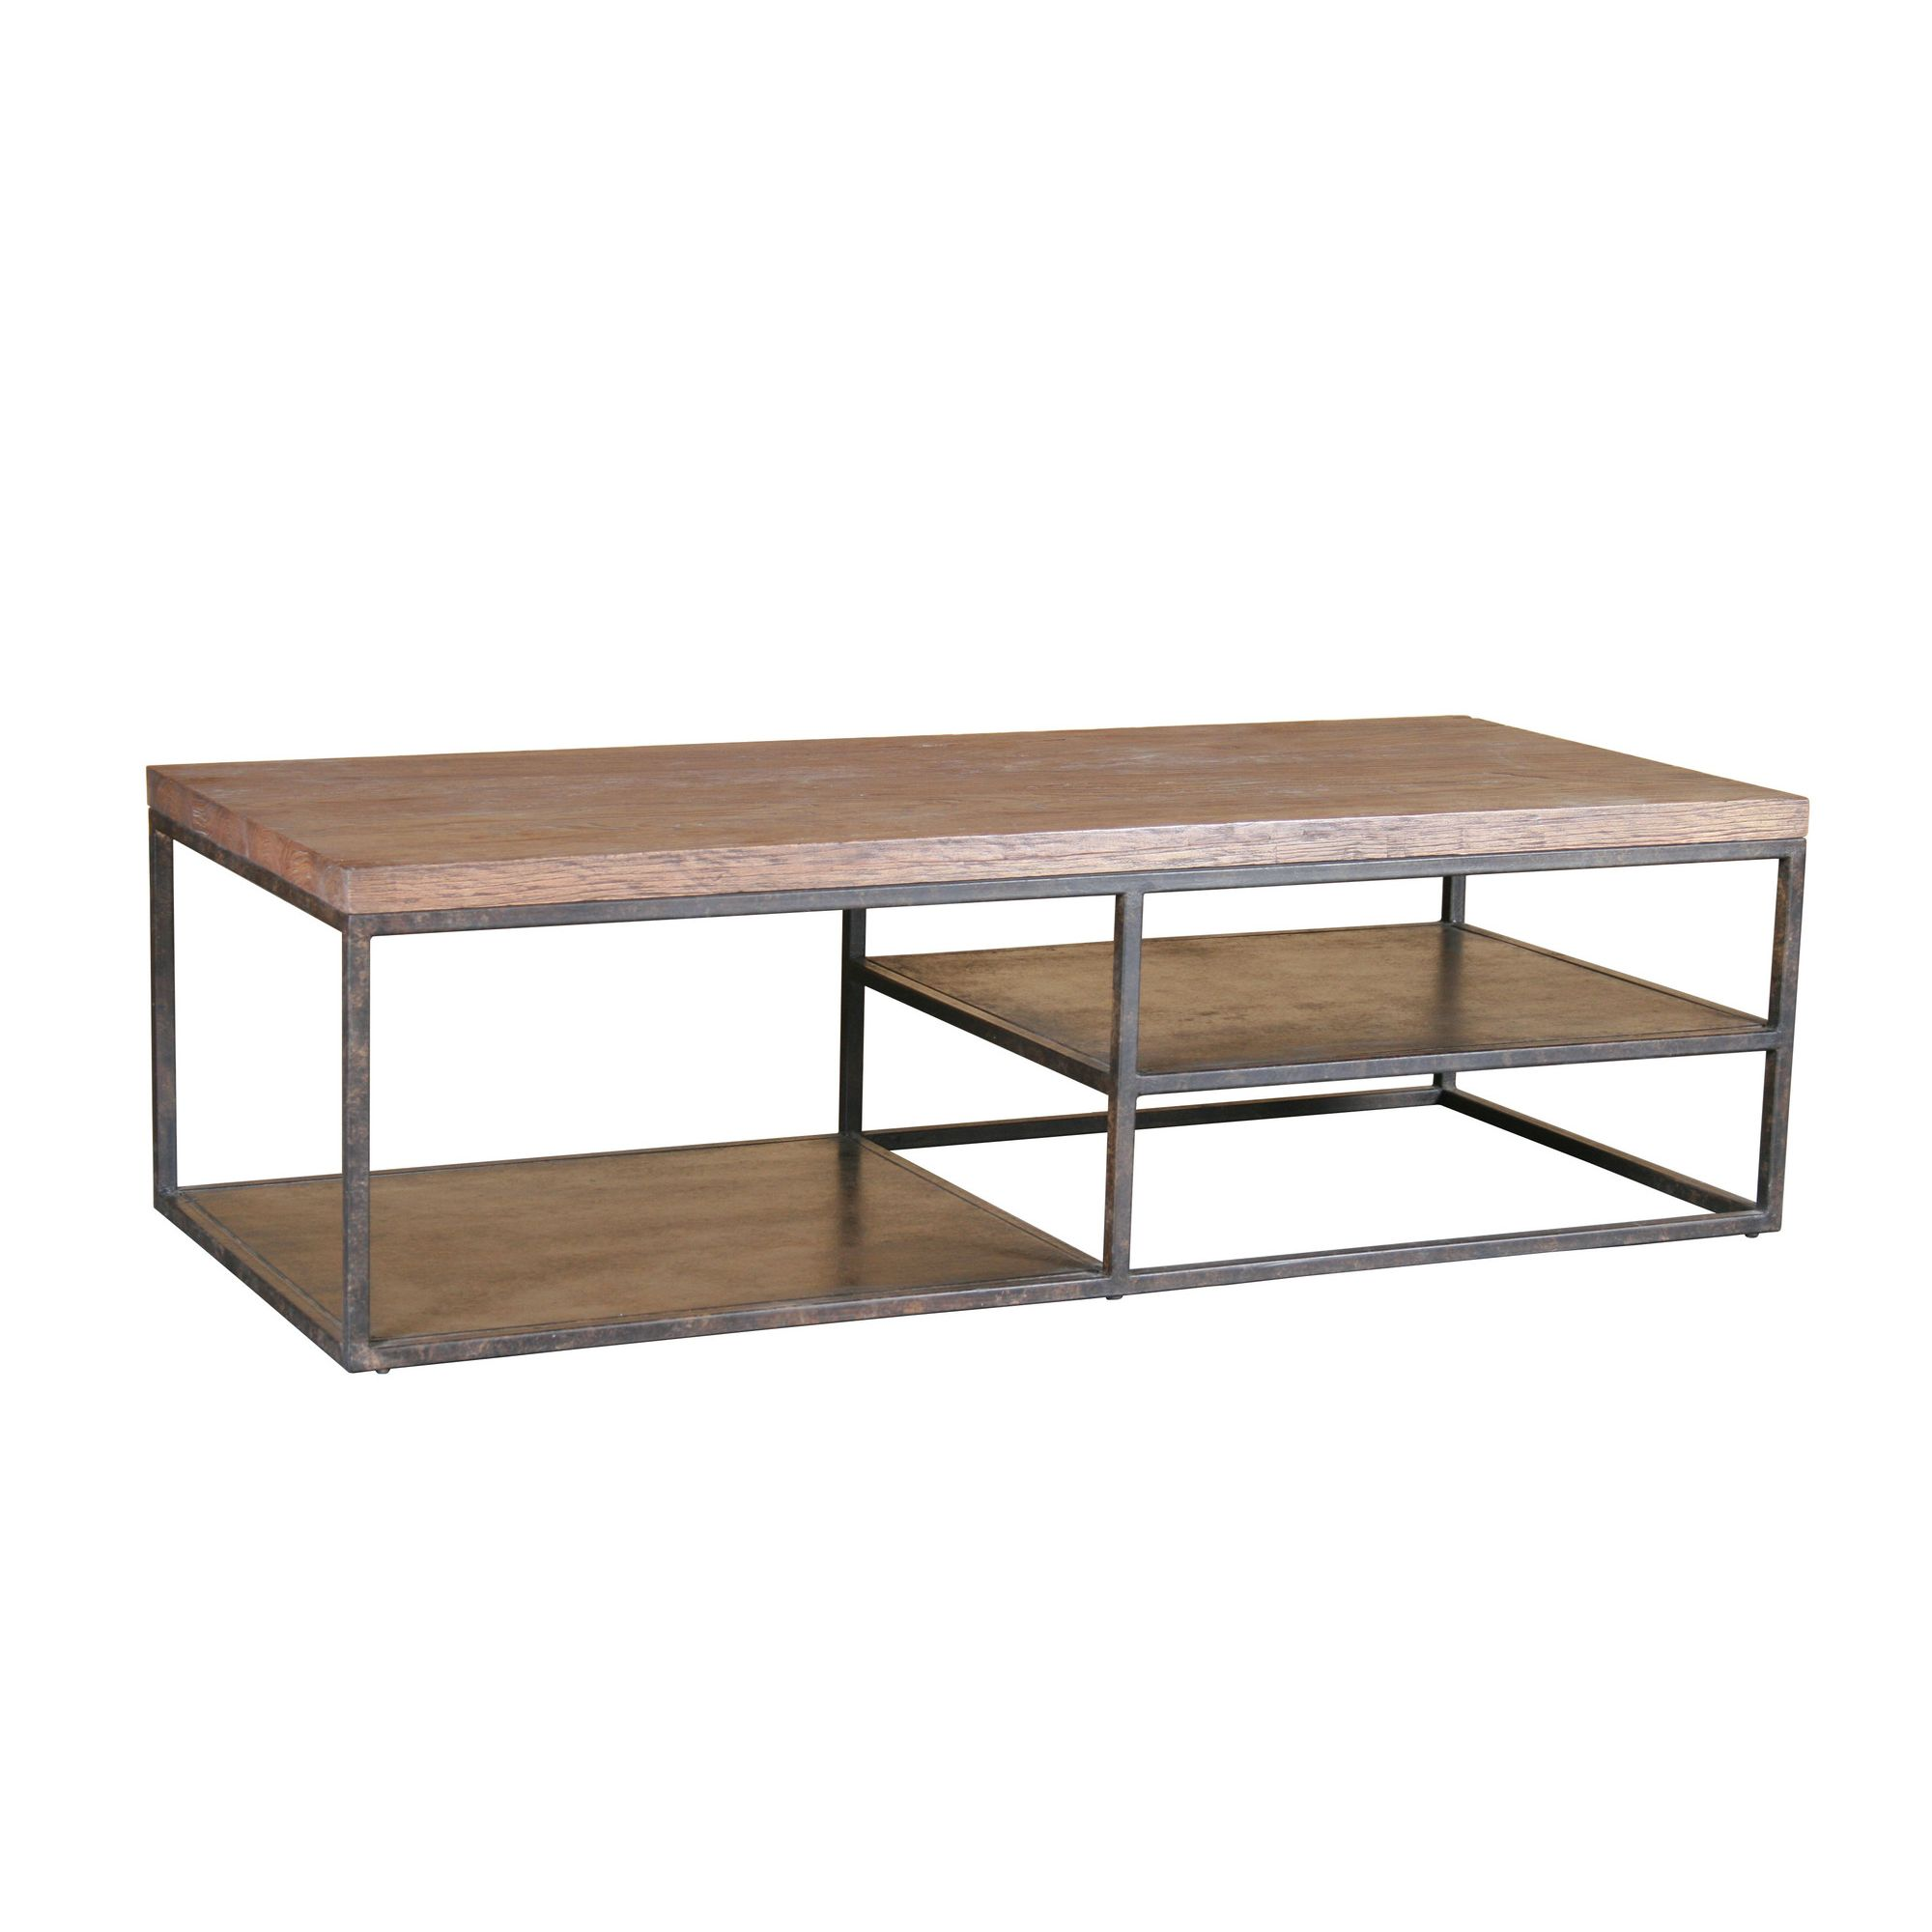 Katigi Designs Reclaimed Wood / Iron Coffee Table at Tesco Direct